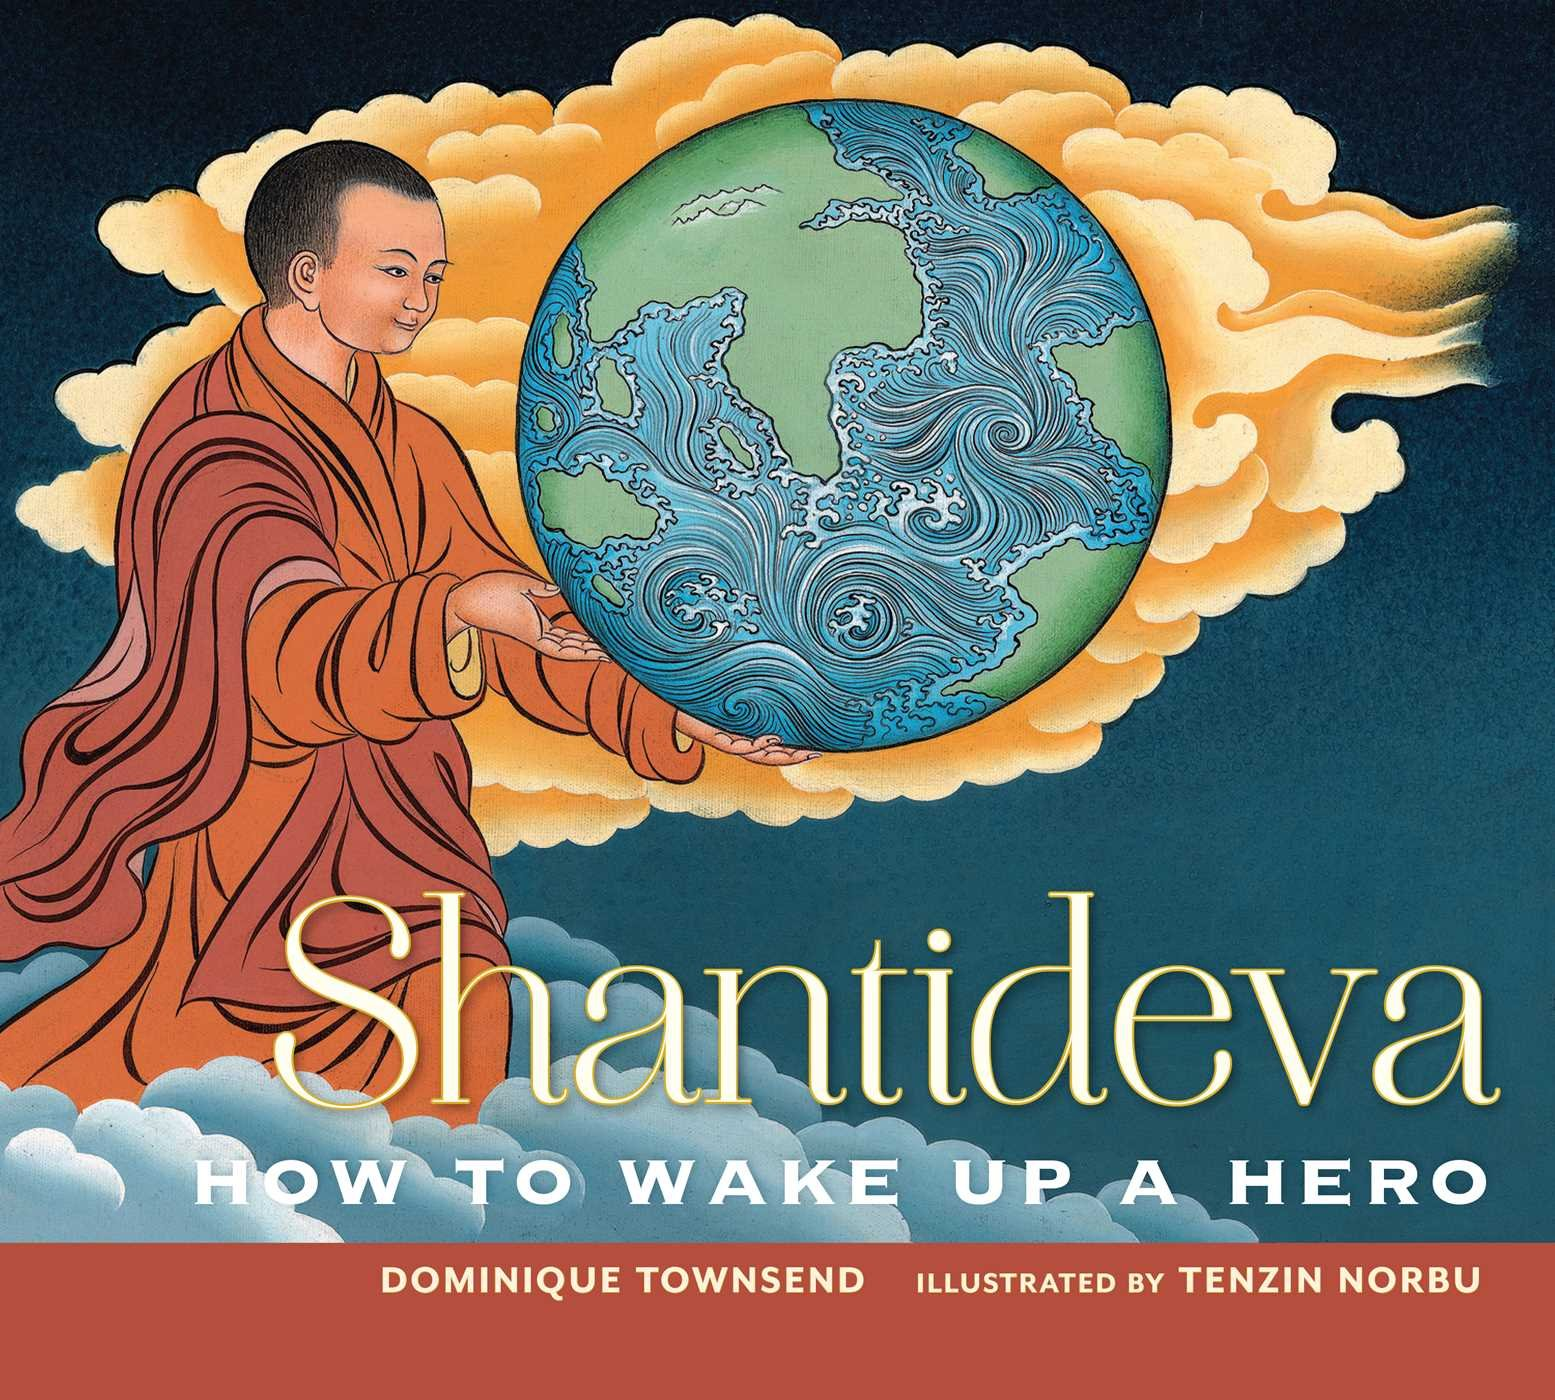 Shantideva: How to Wake Up a Hero